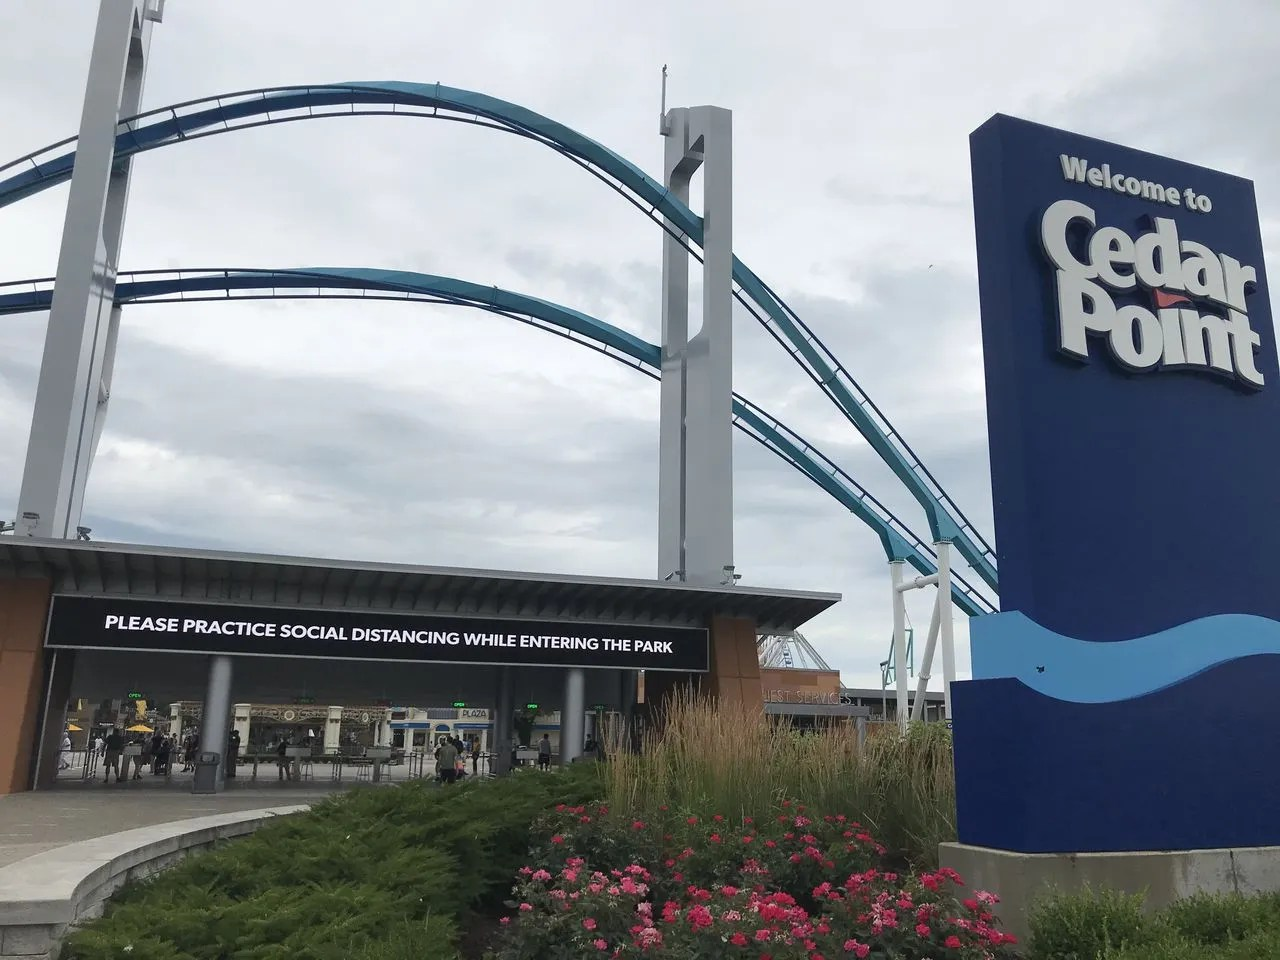 Cedar Point reduces hours, will operate weekends-only starting in mid-August